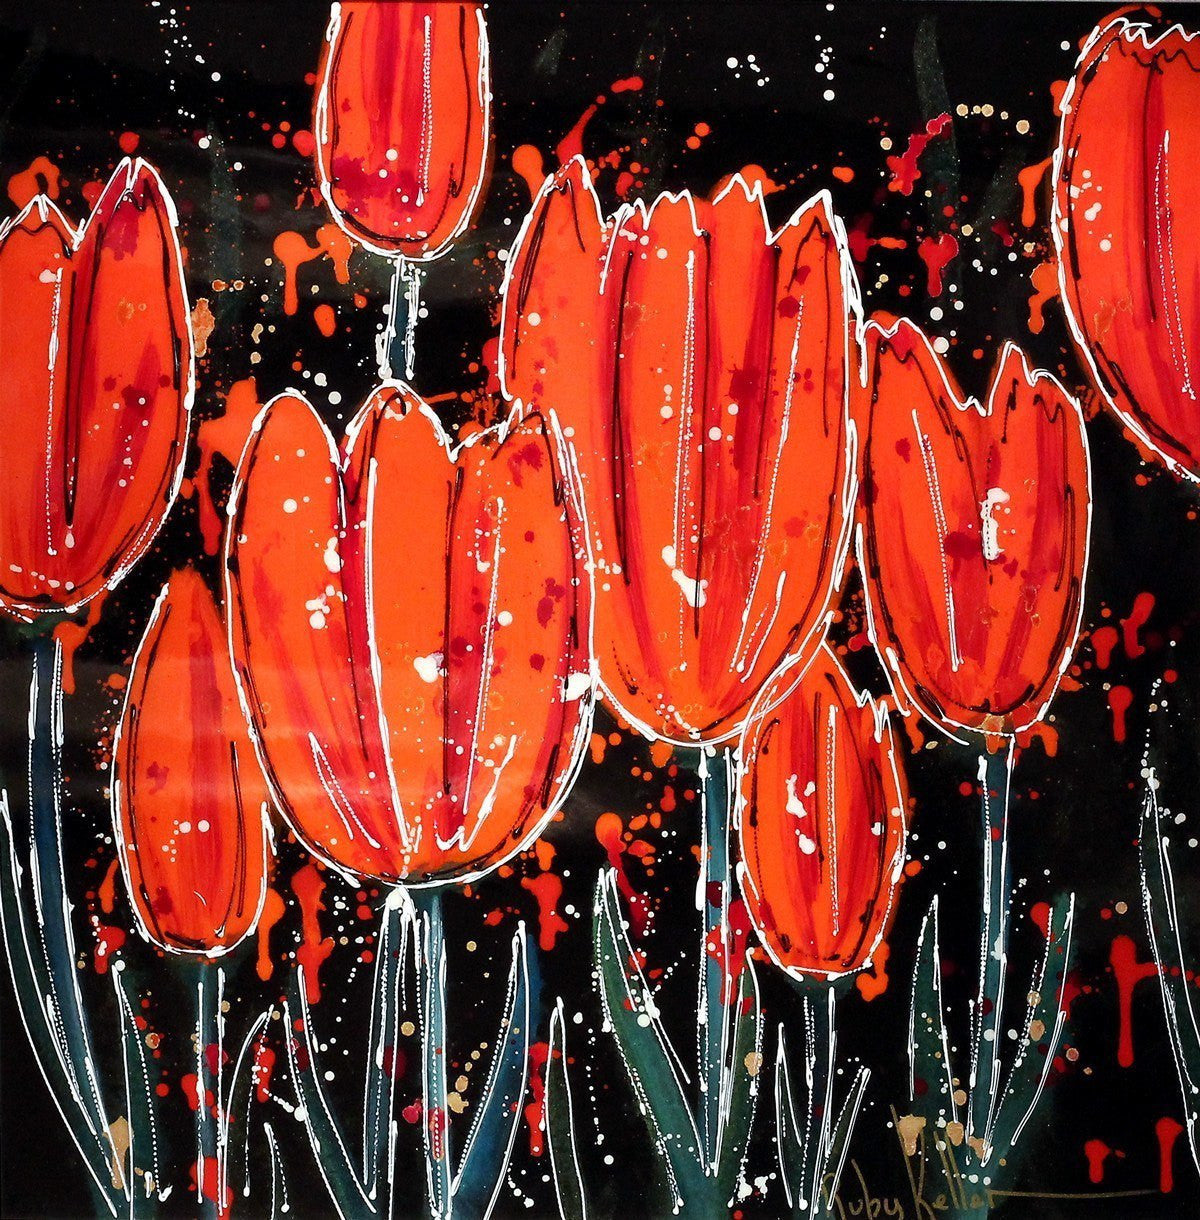 Red Tulips - SOLD Ruby Keller